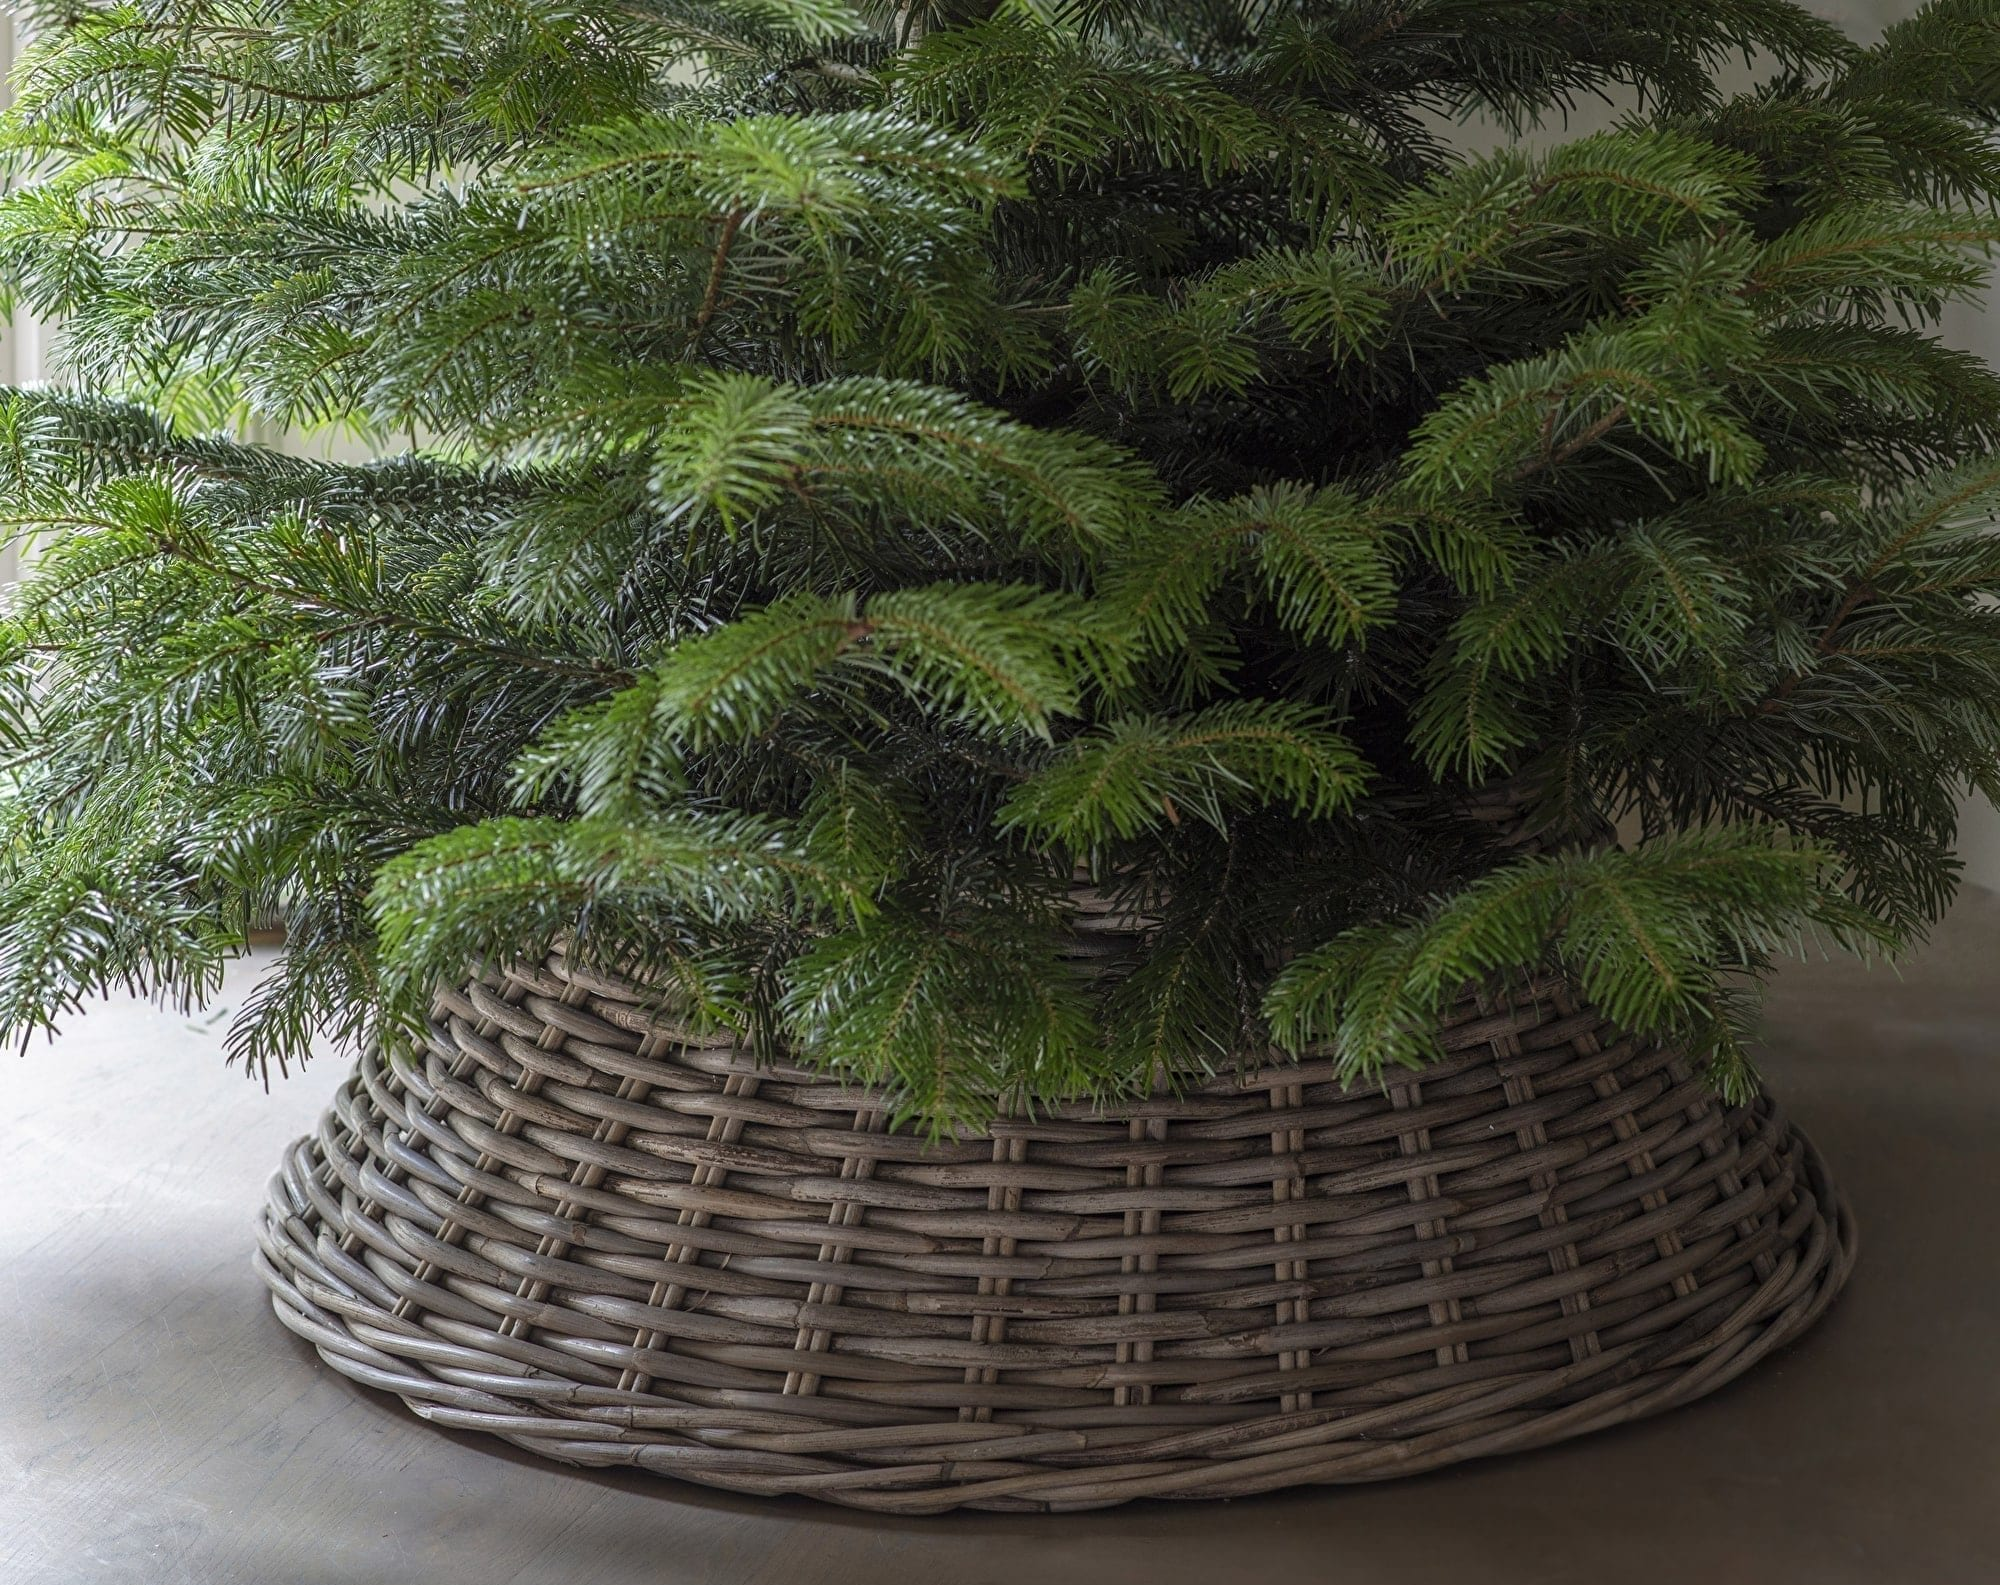 rattan-christmas-tree-basket-willow-lifestyle